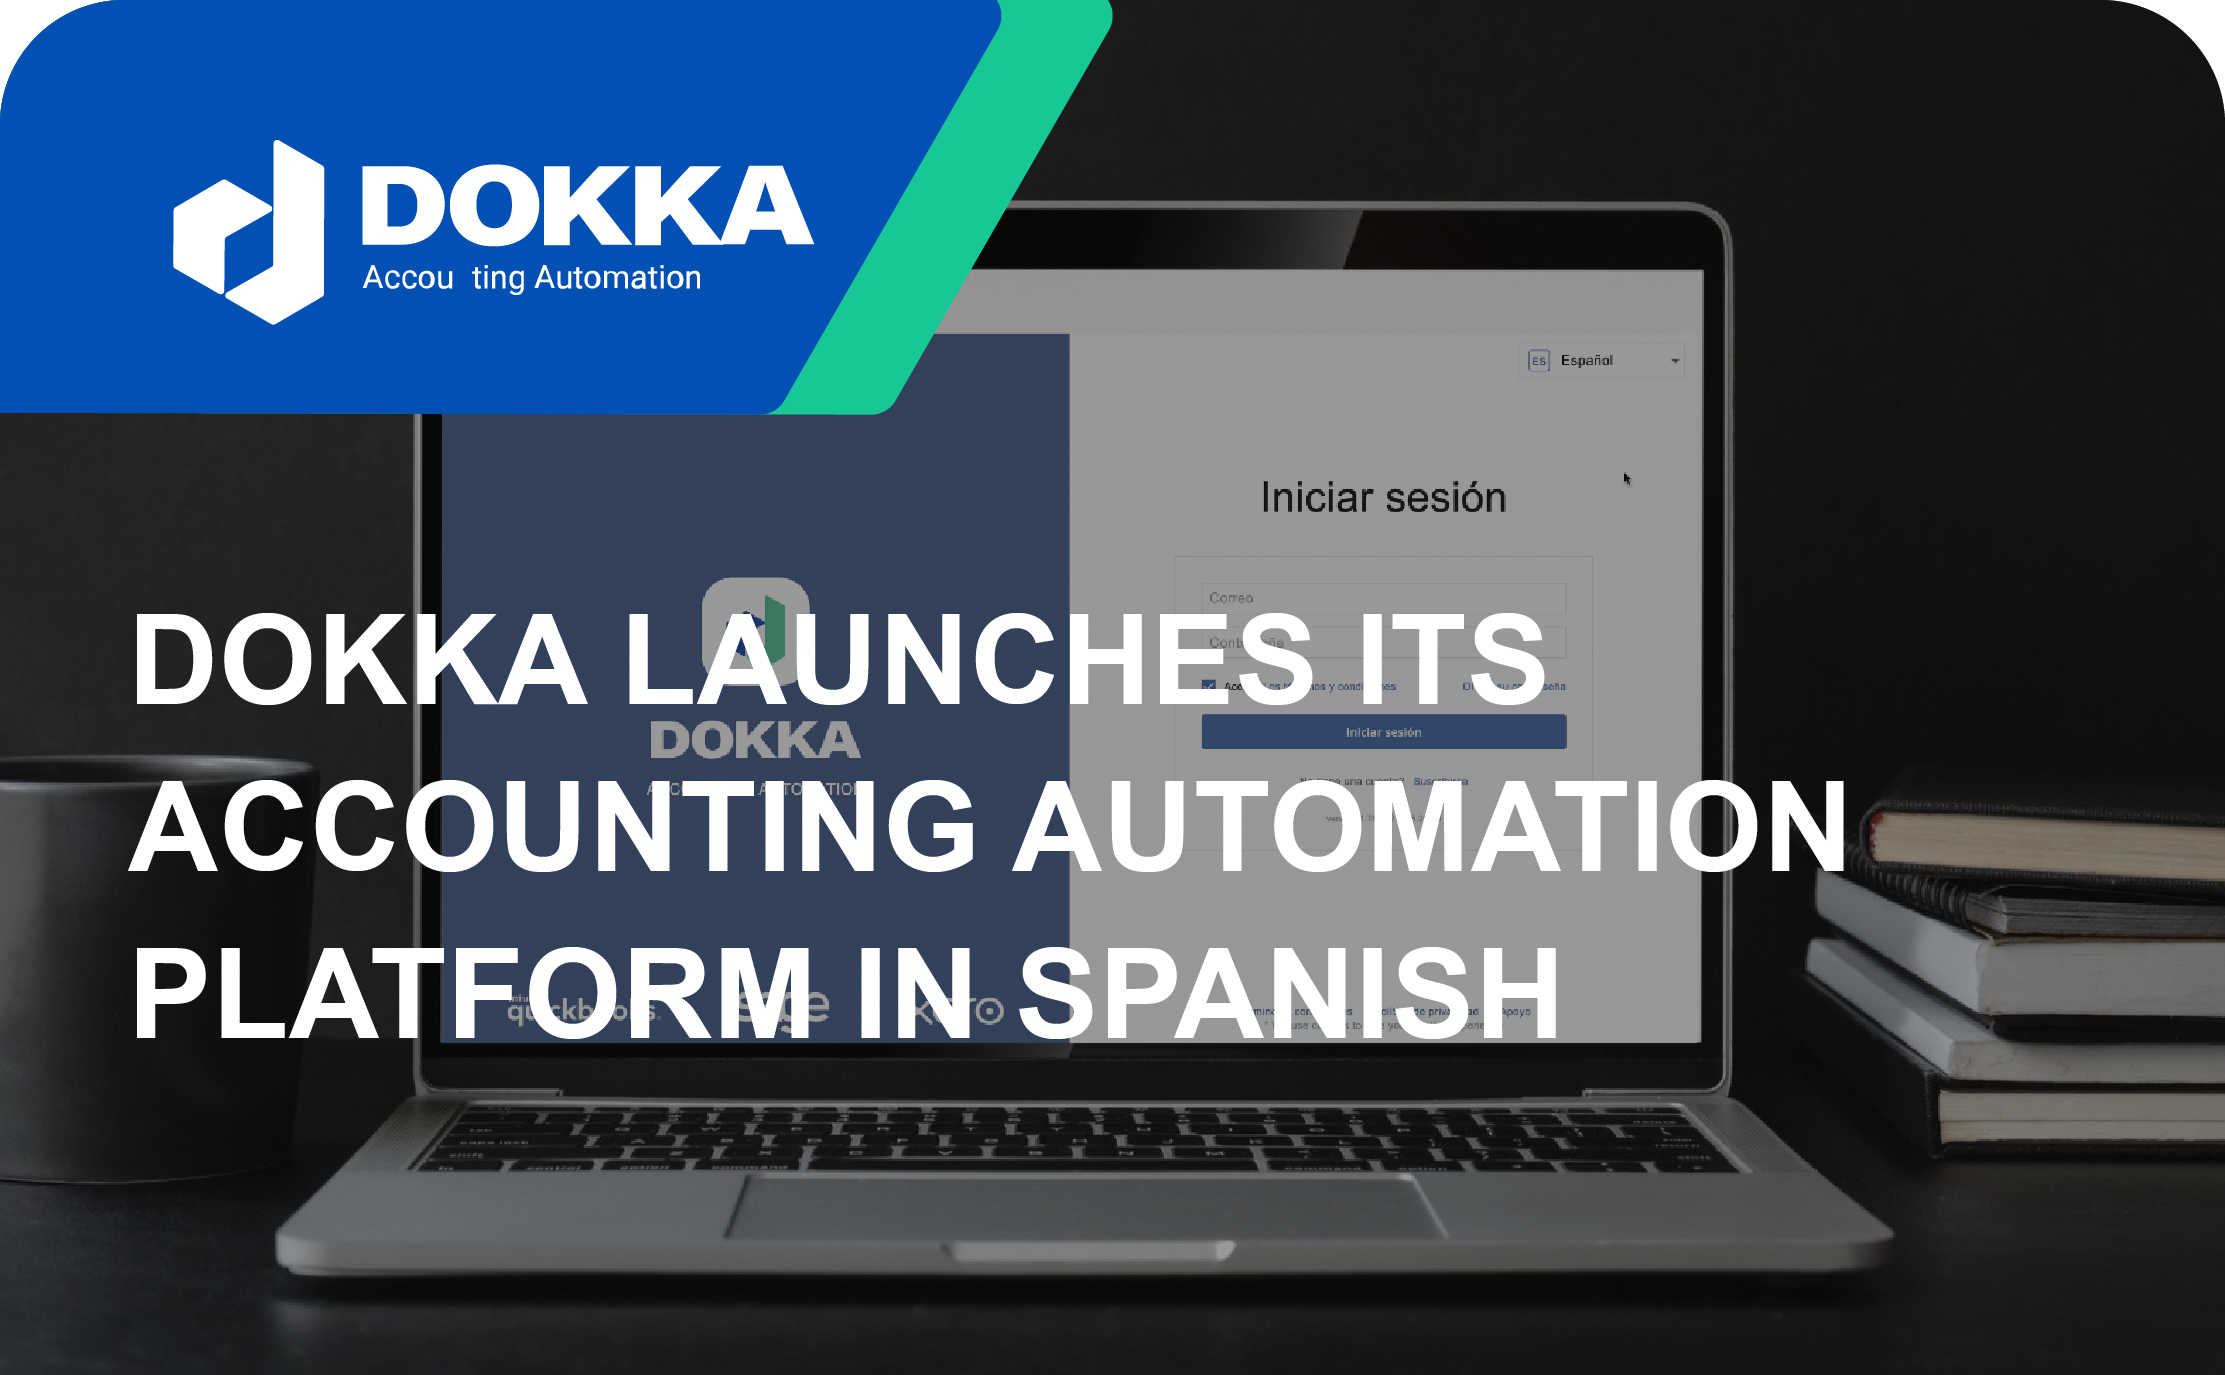 DOKKA launches its Accounting Automation Platform in Spanish